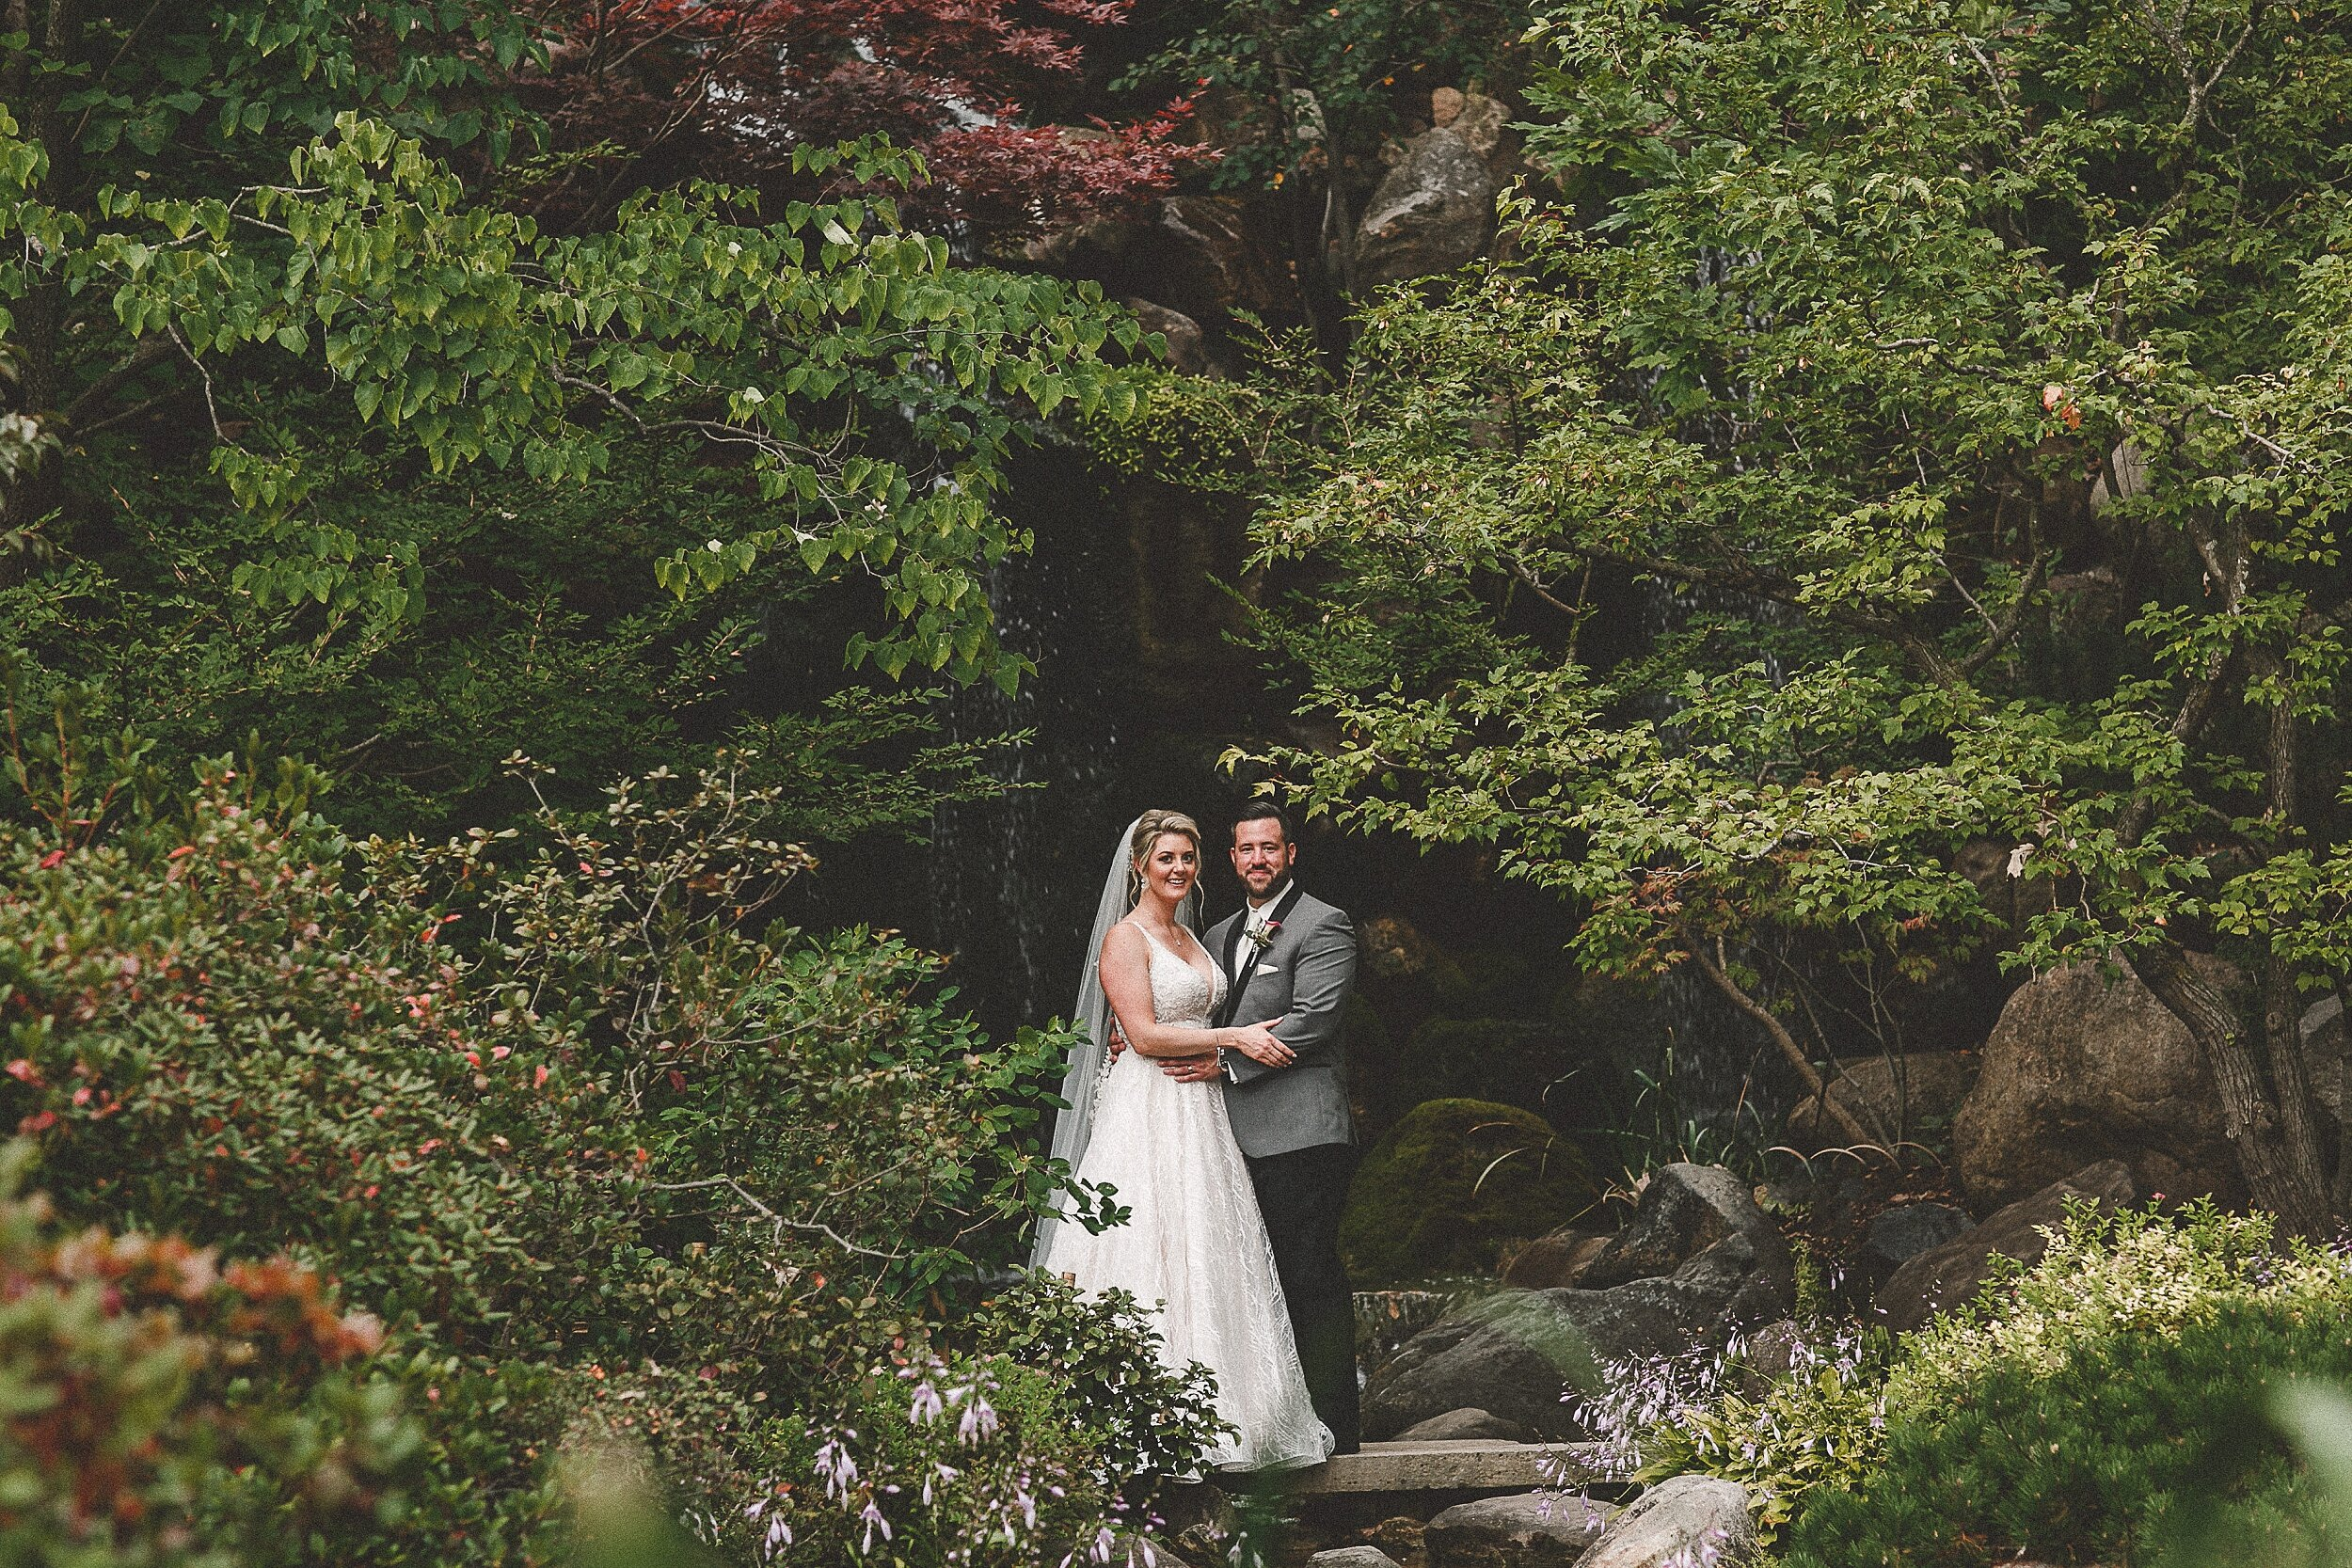 anderson-japanese-gardens-rockford-il-wedding-photos_0148.jpg